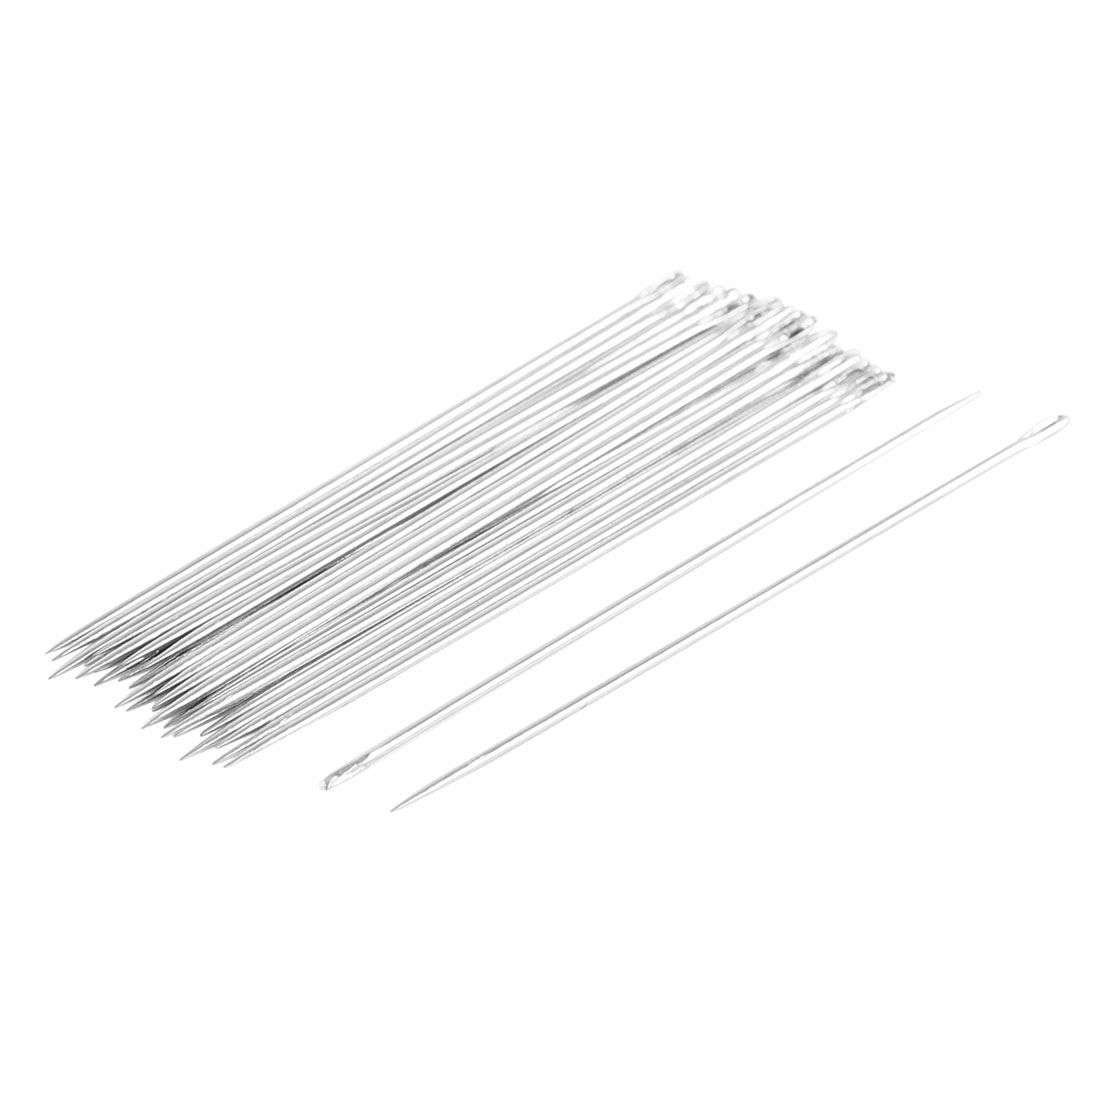 30 Pcs Silver Tone Stainless Steel Sewing Needles